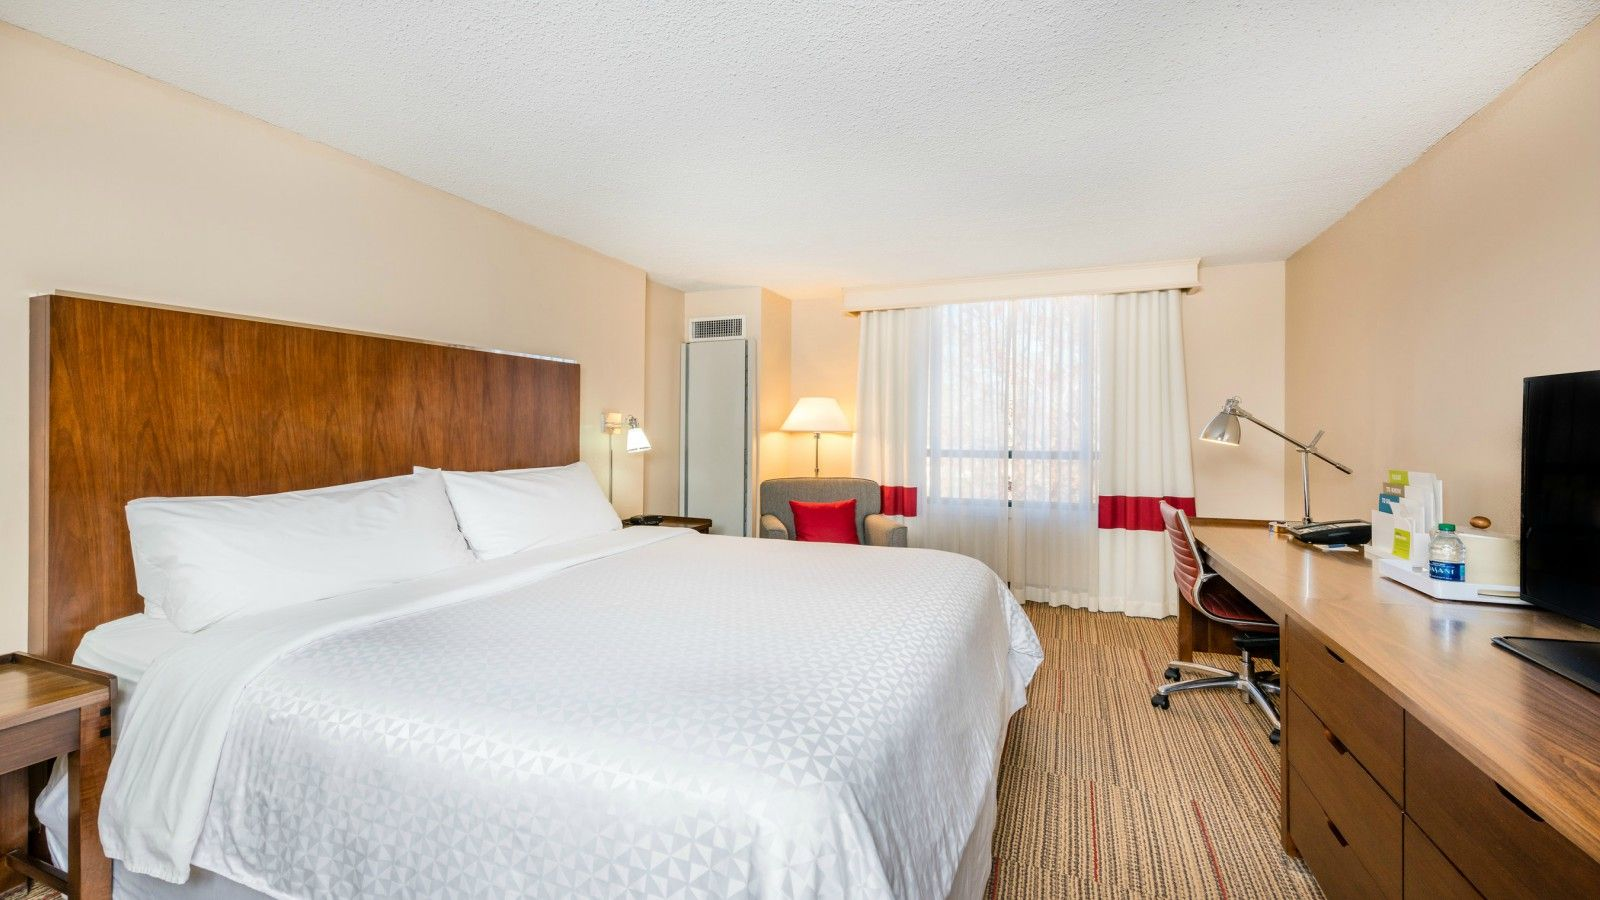 Charlotte Accommodations - Accessible Room